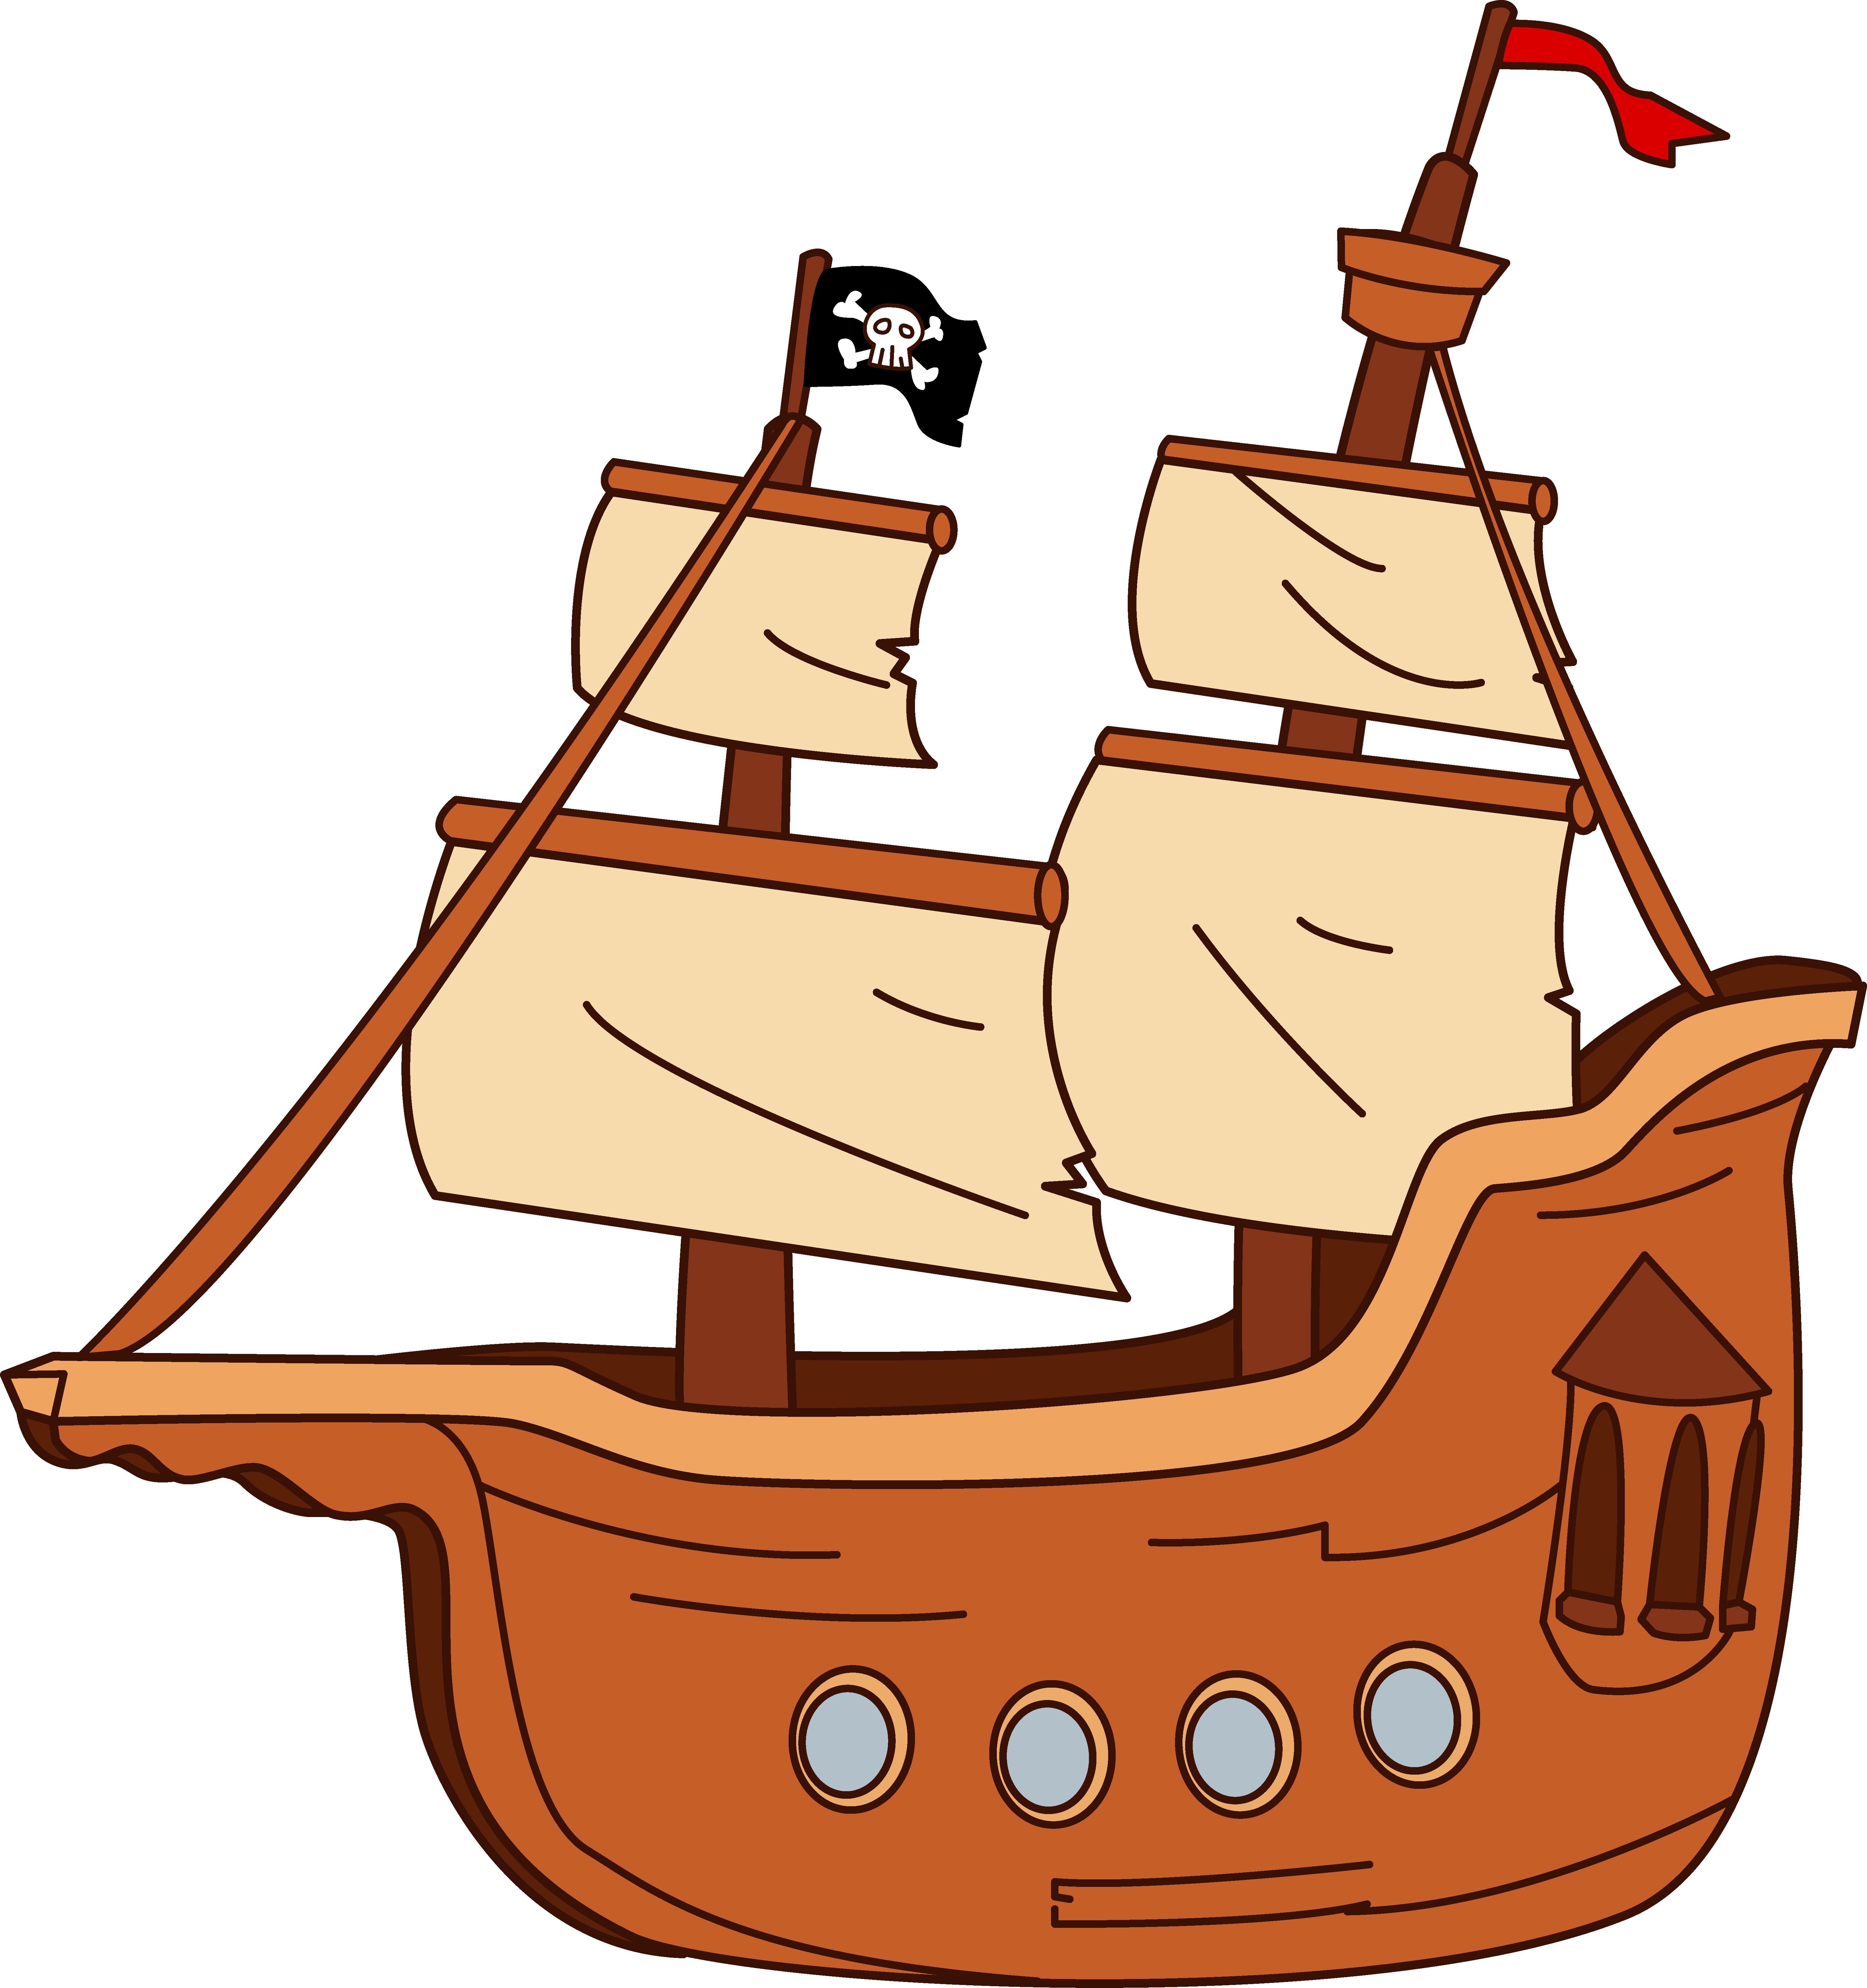 Pirate Ship clipart #3, Download drawings